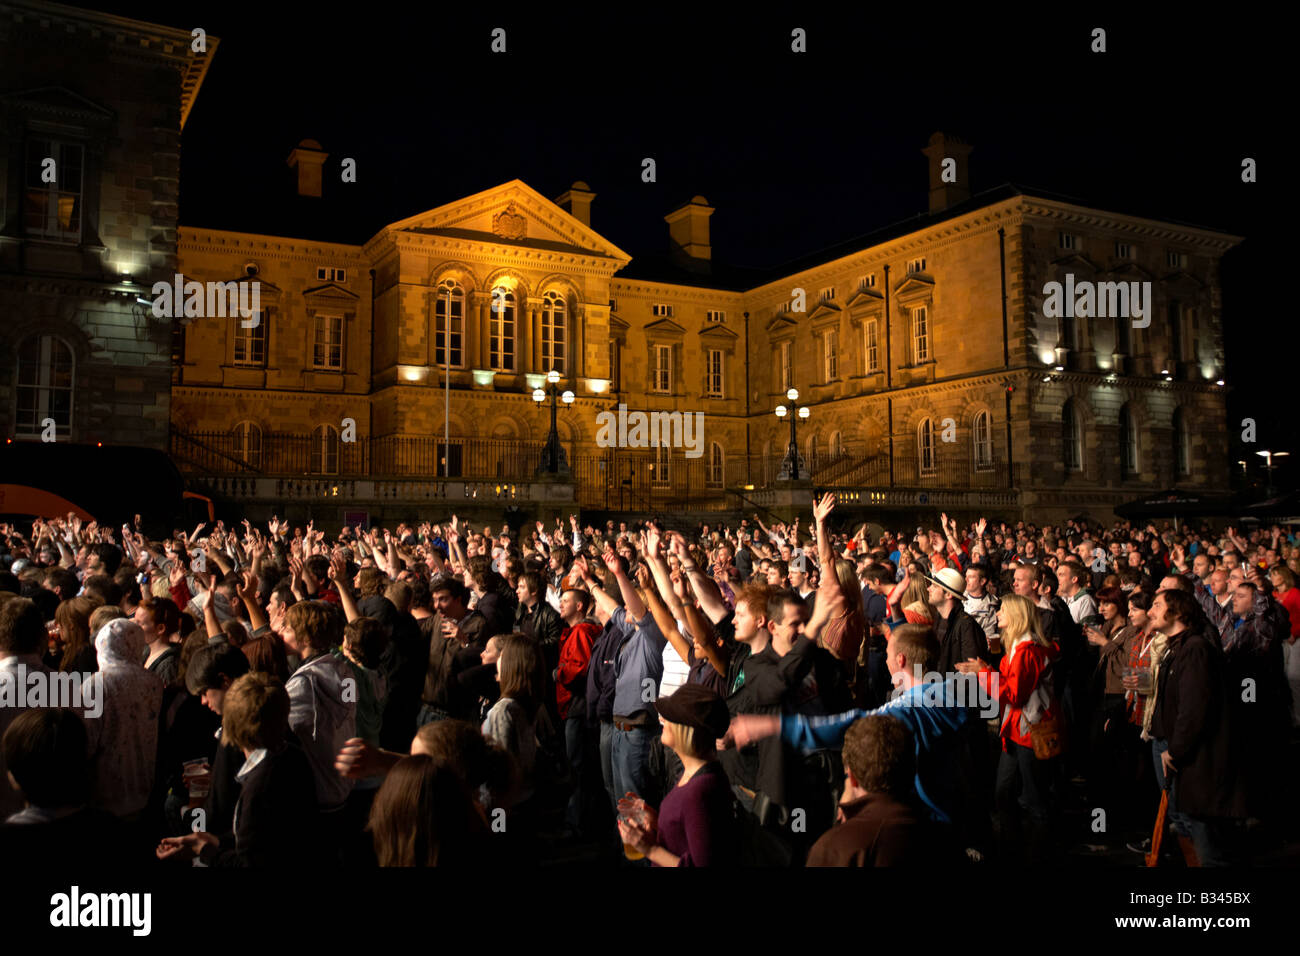 Outdoor Concert Stock Photos & Outdoor Concert Stock Images - Alamy